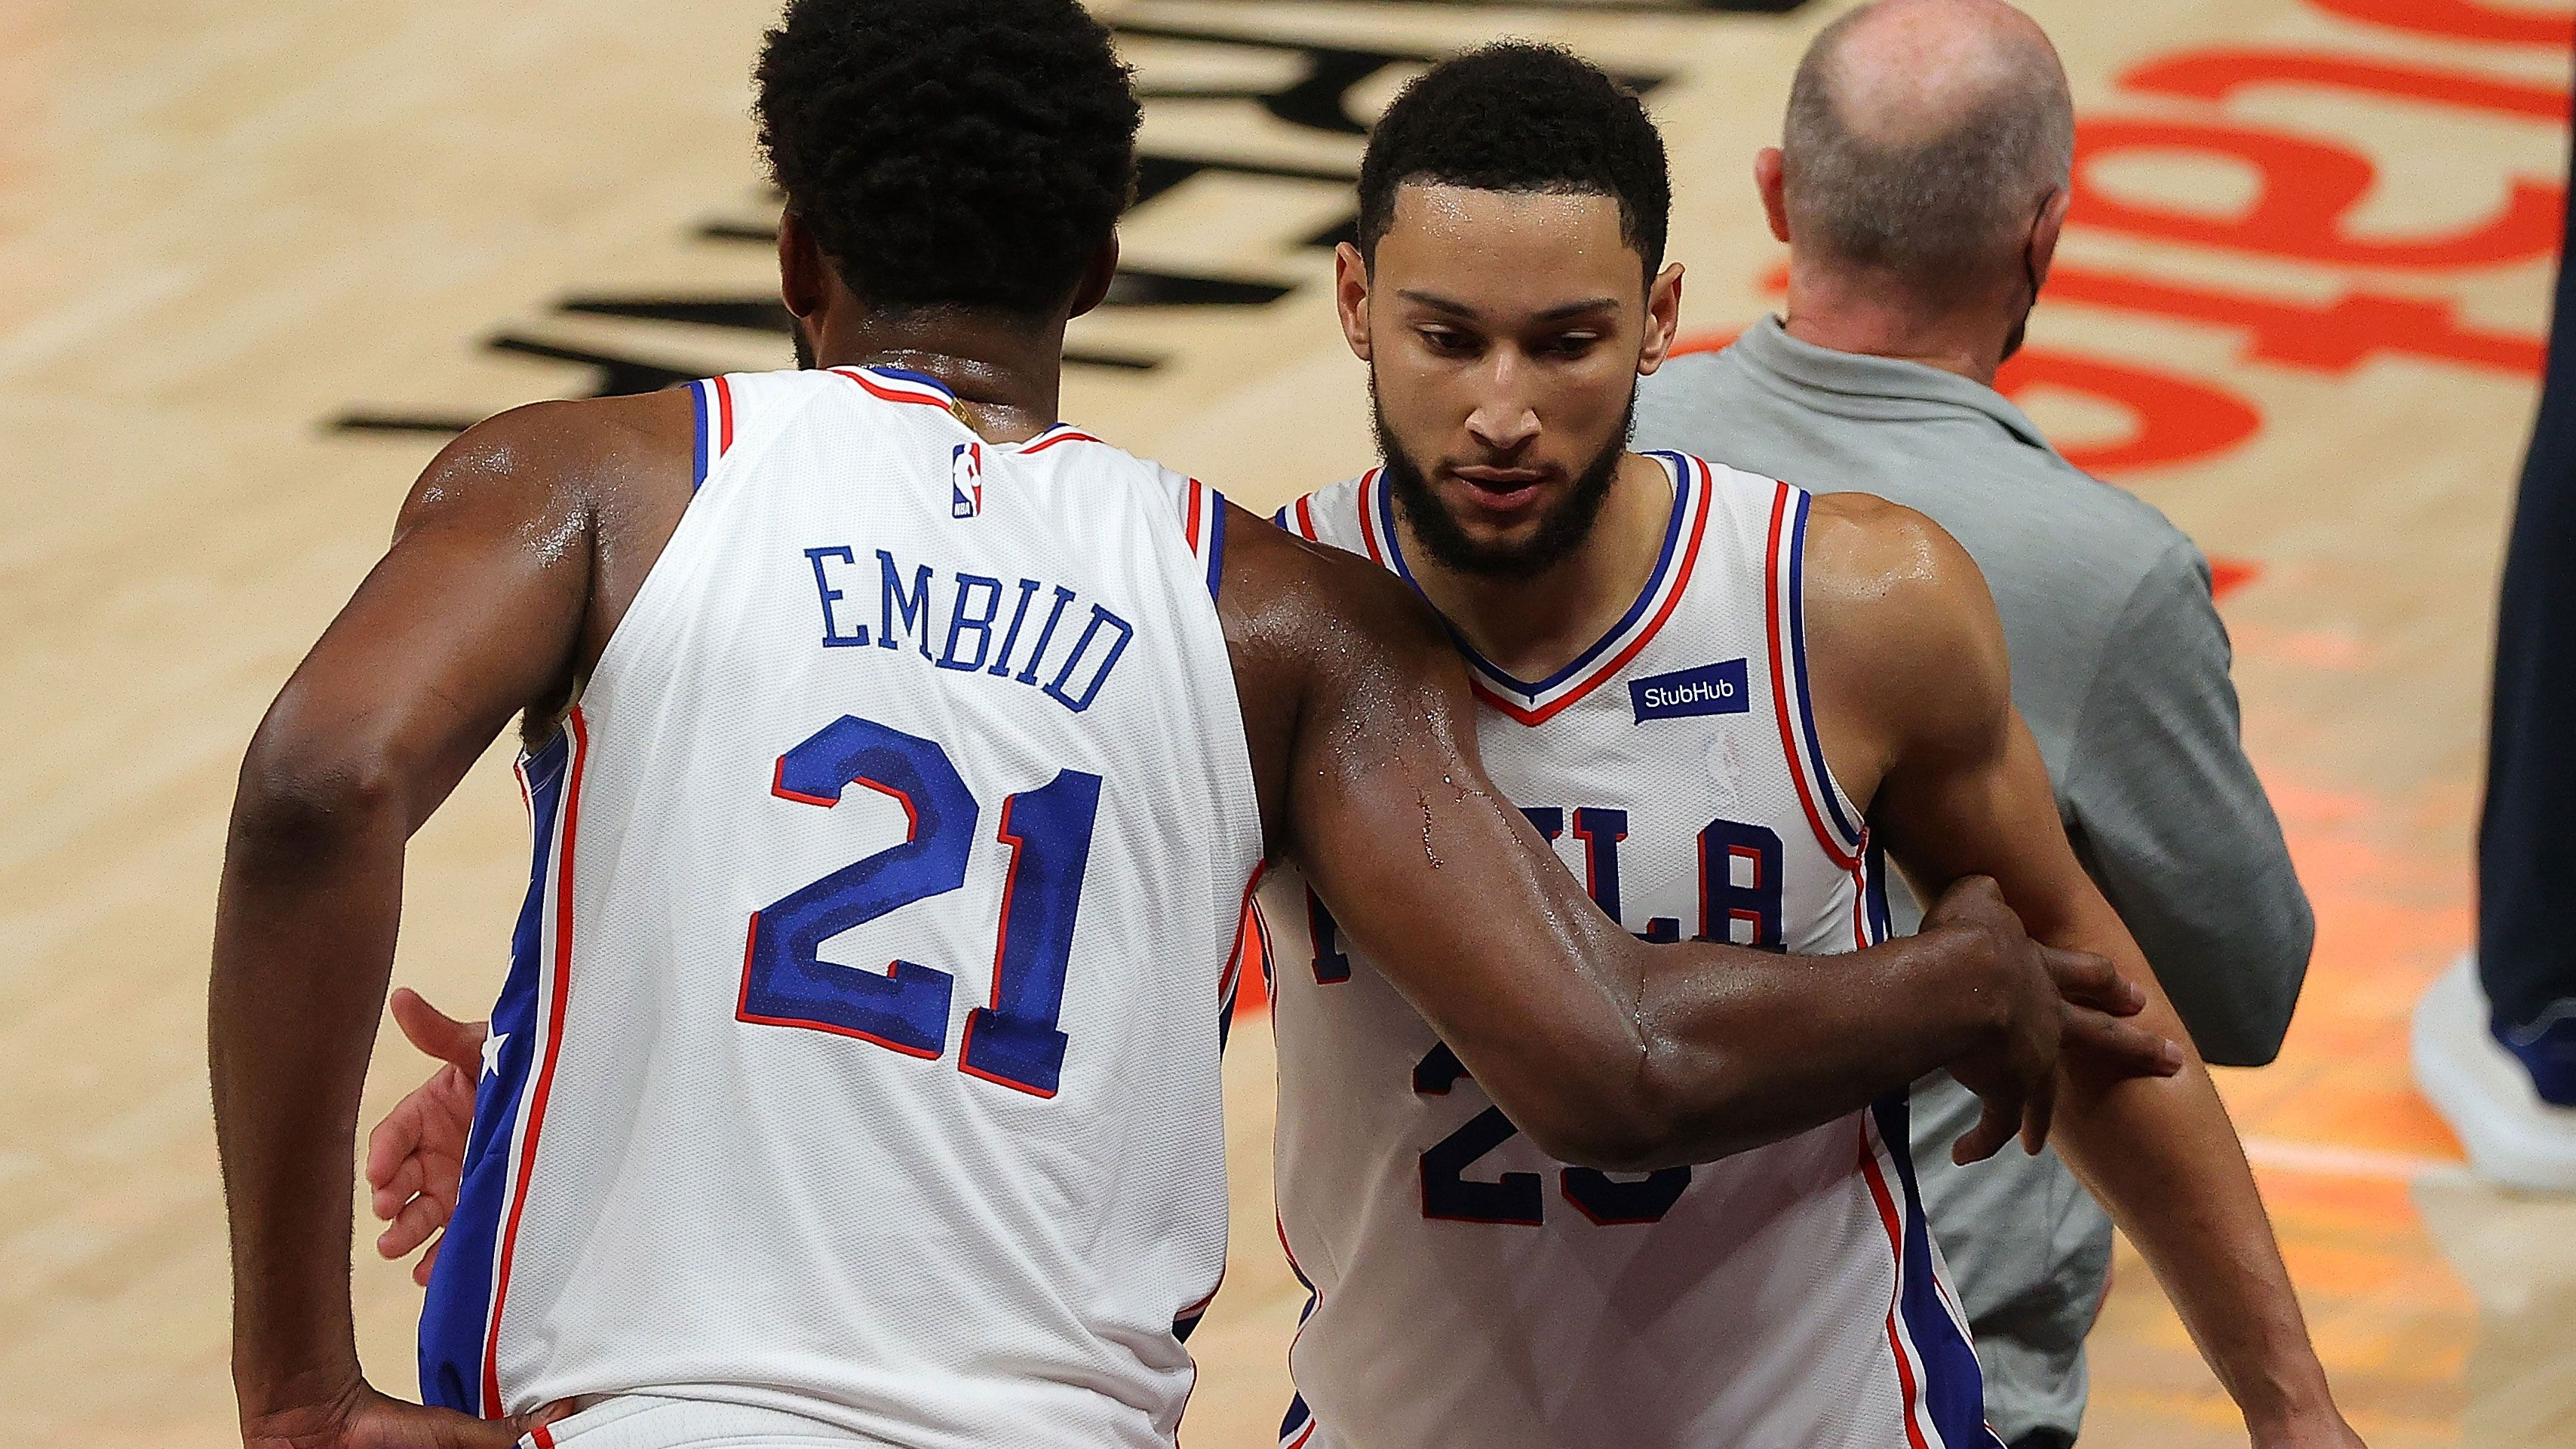 'Ben Simmons has got to go':  NBA world turns on Aussie star after toothless end to season